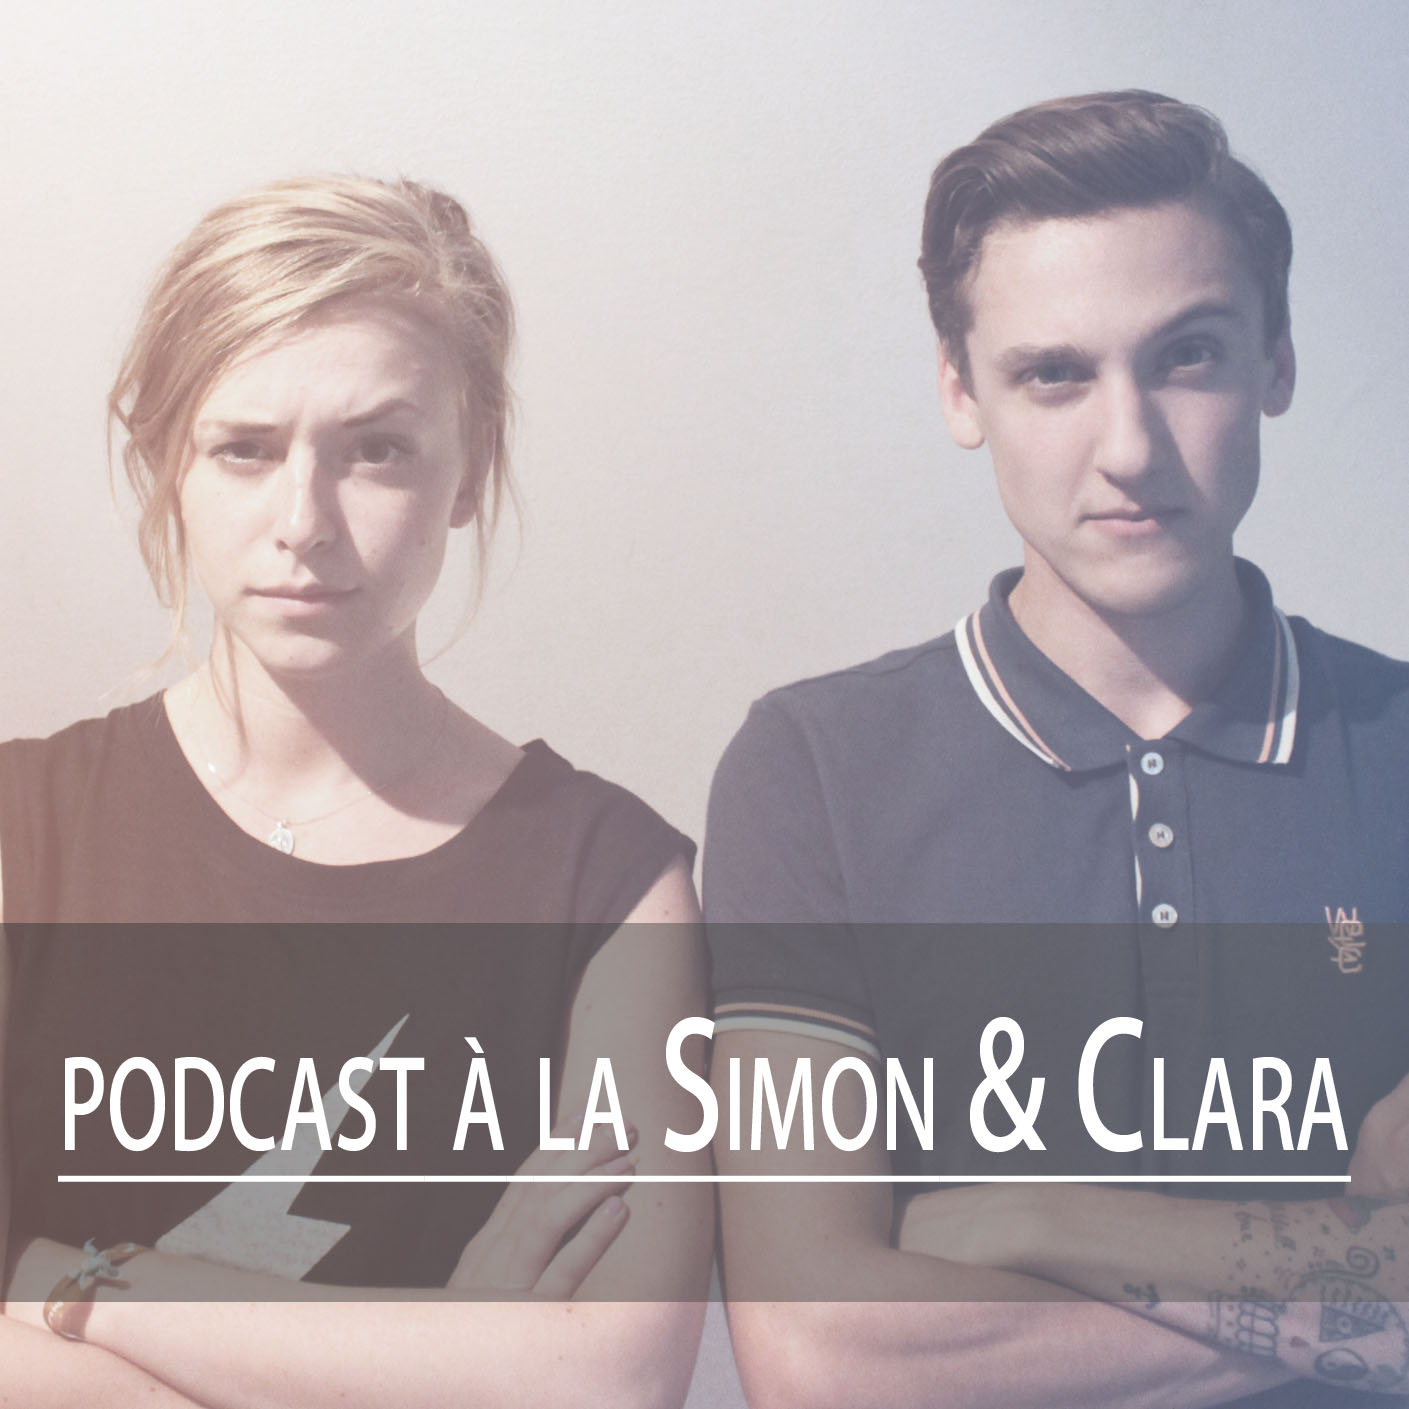 Podcast Simon & Clara